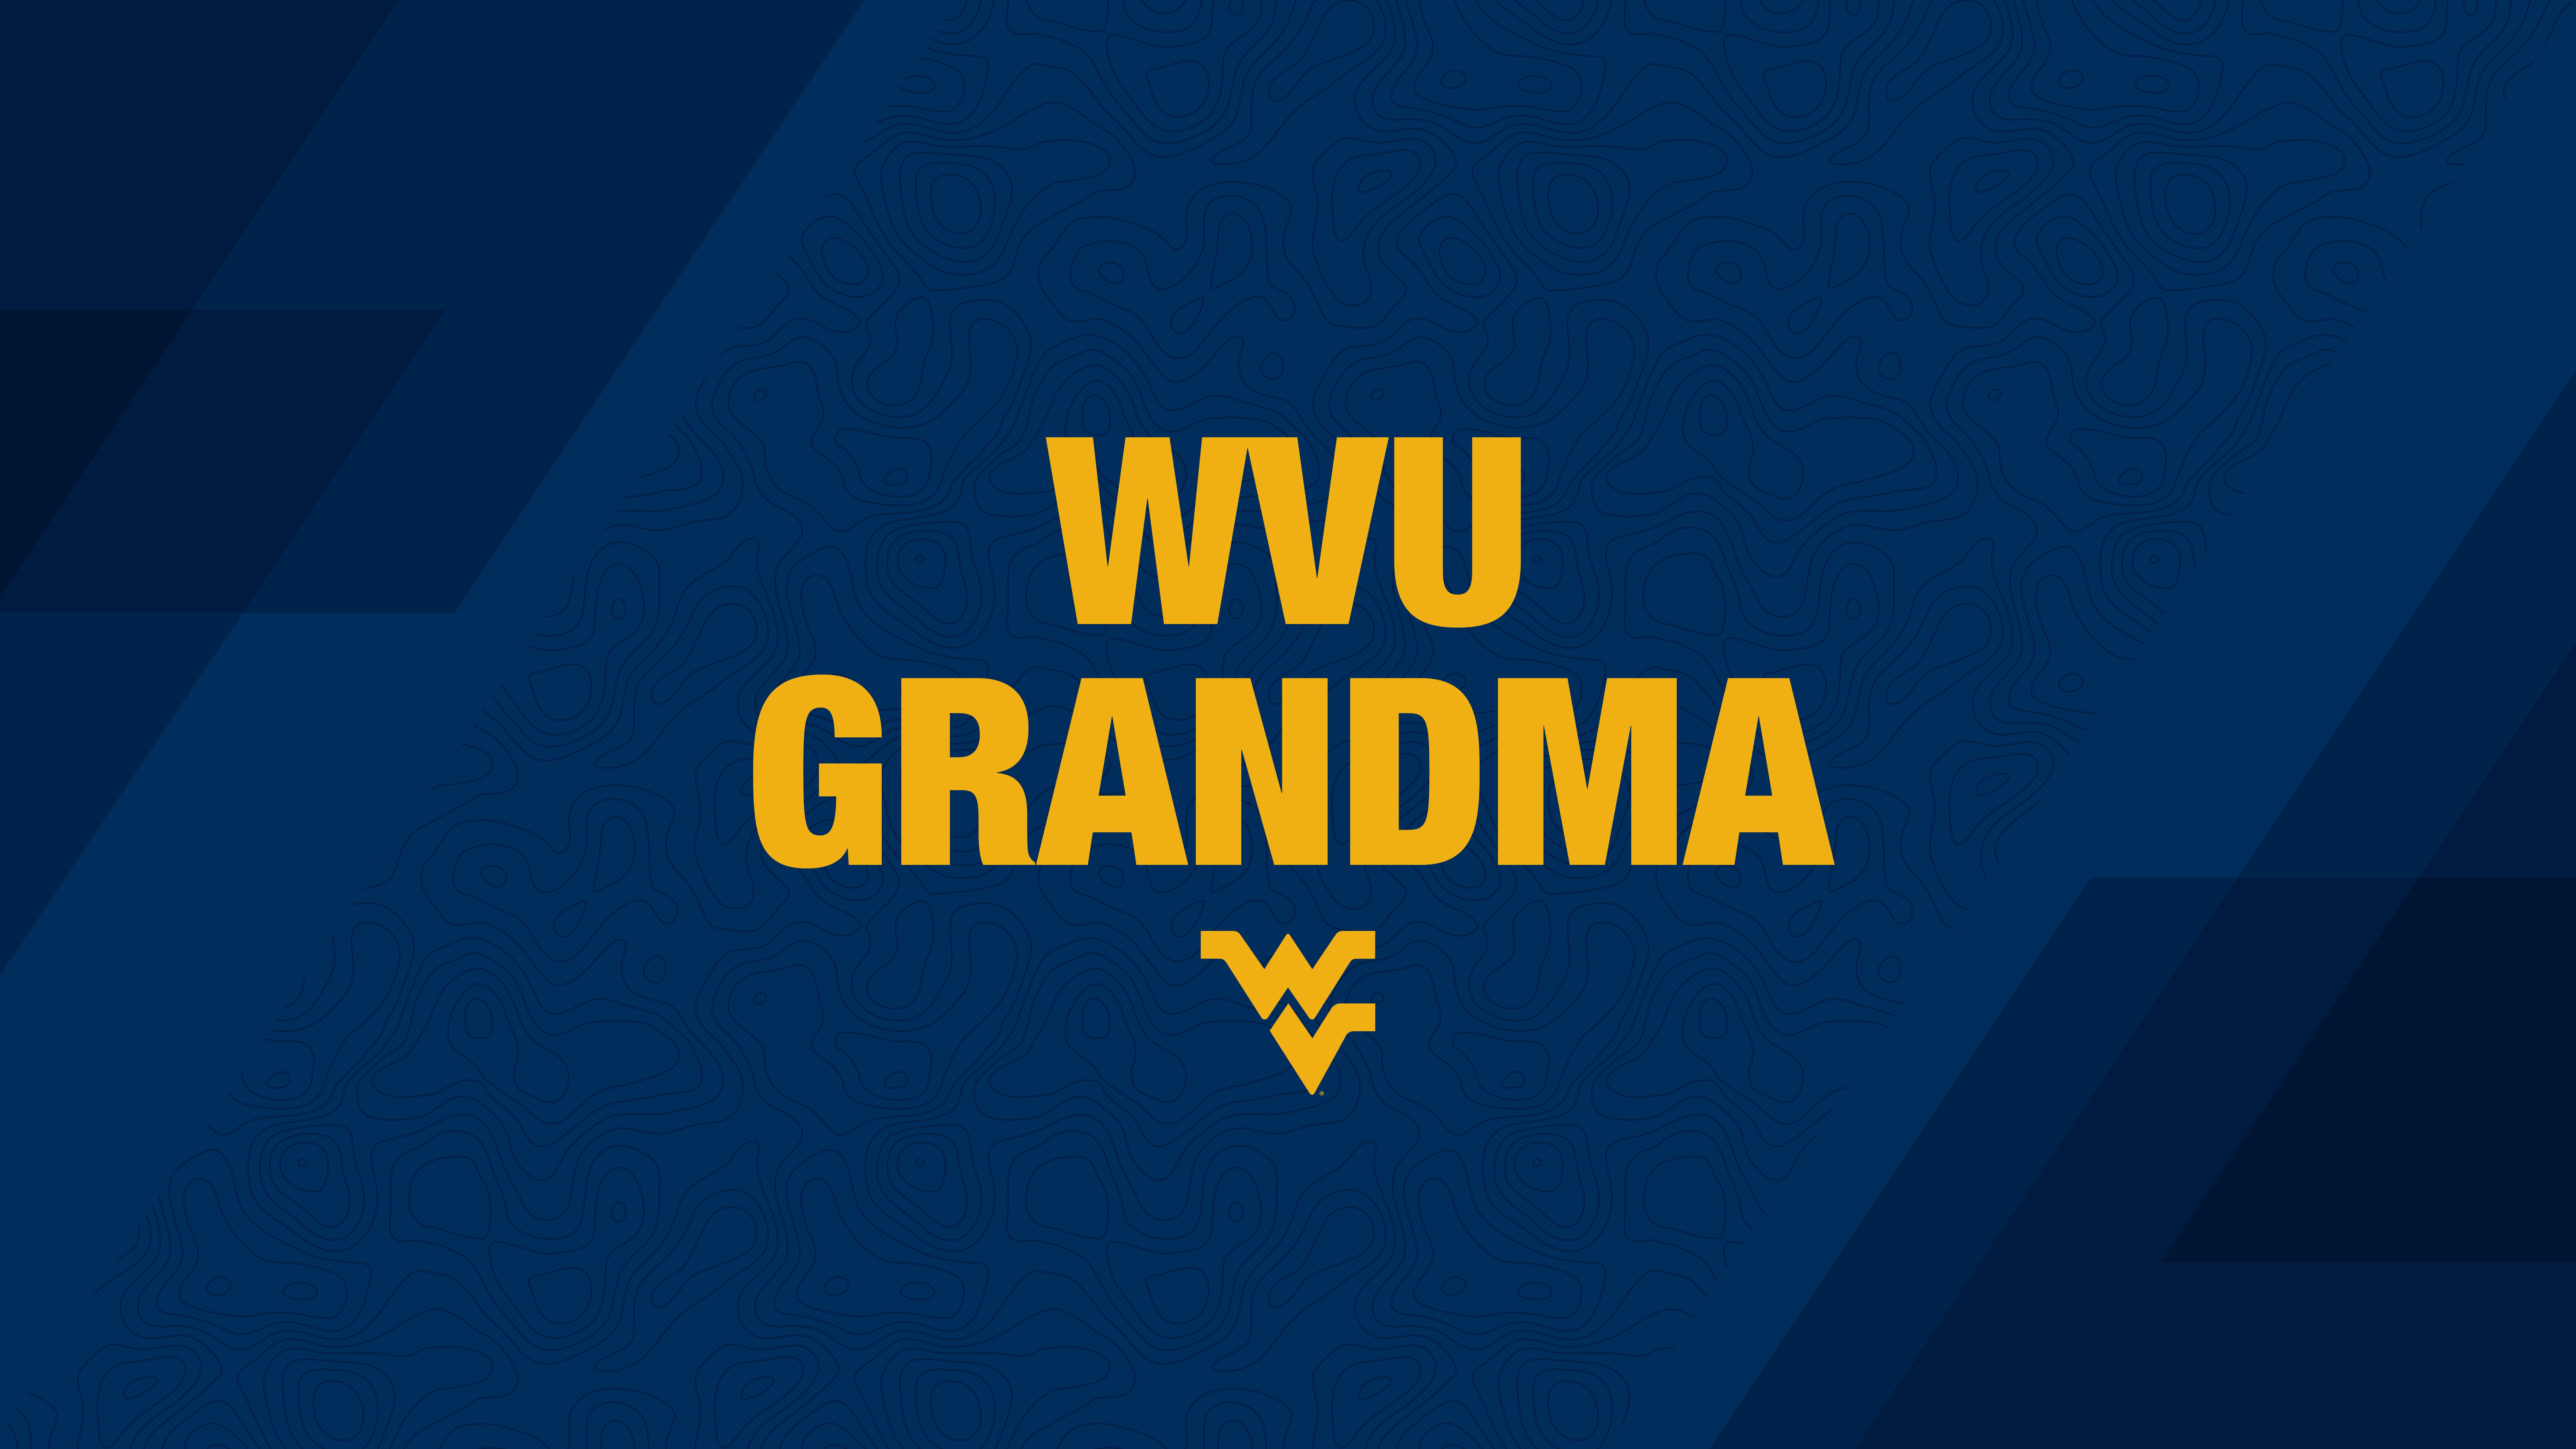 WVU Grandma PC or tablet wallpaper